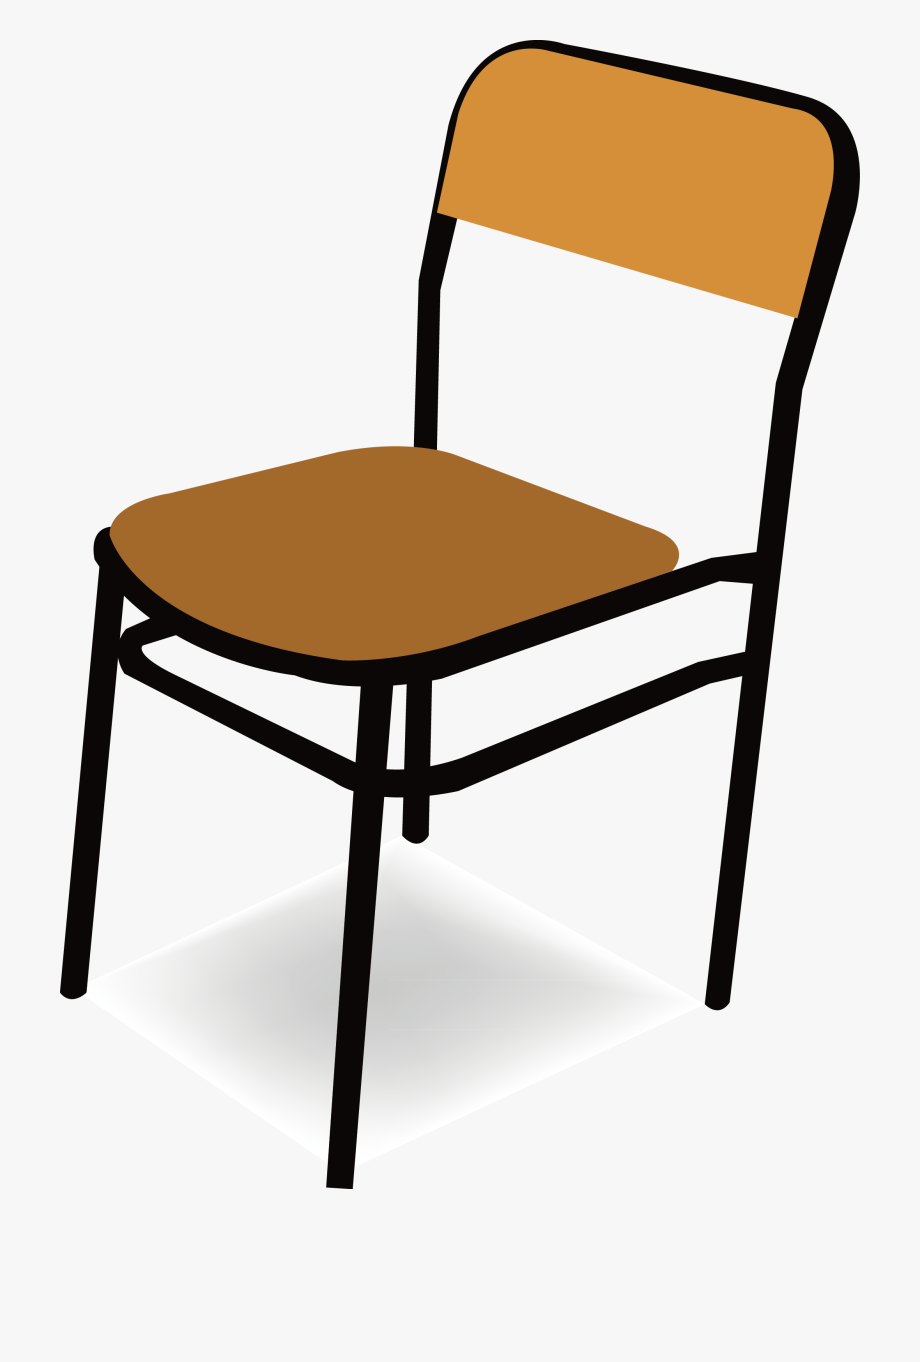 Chair clipart school pictures on Cliparts Pub 2020! 🔝